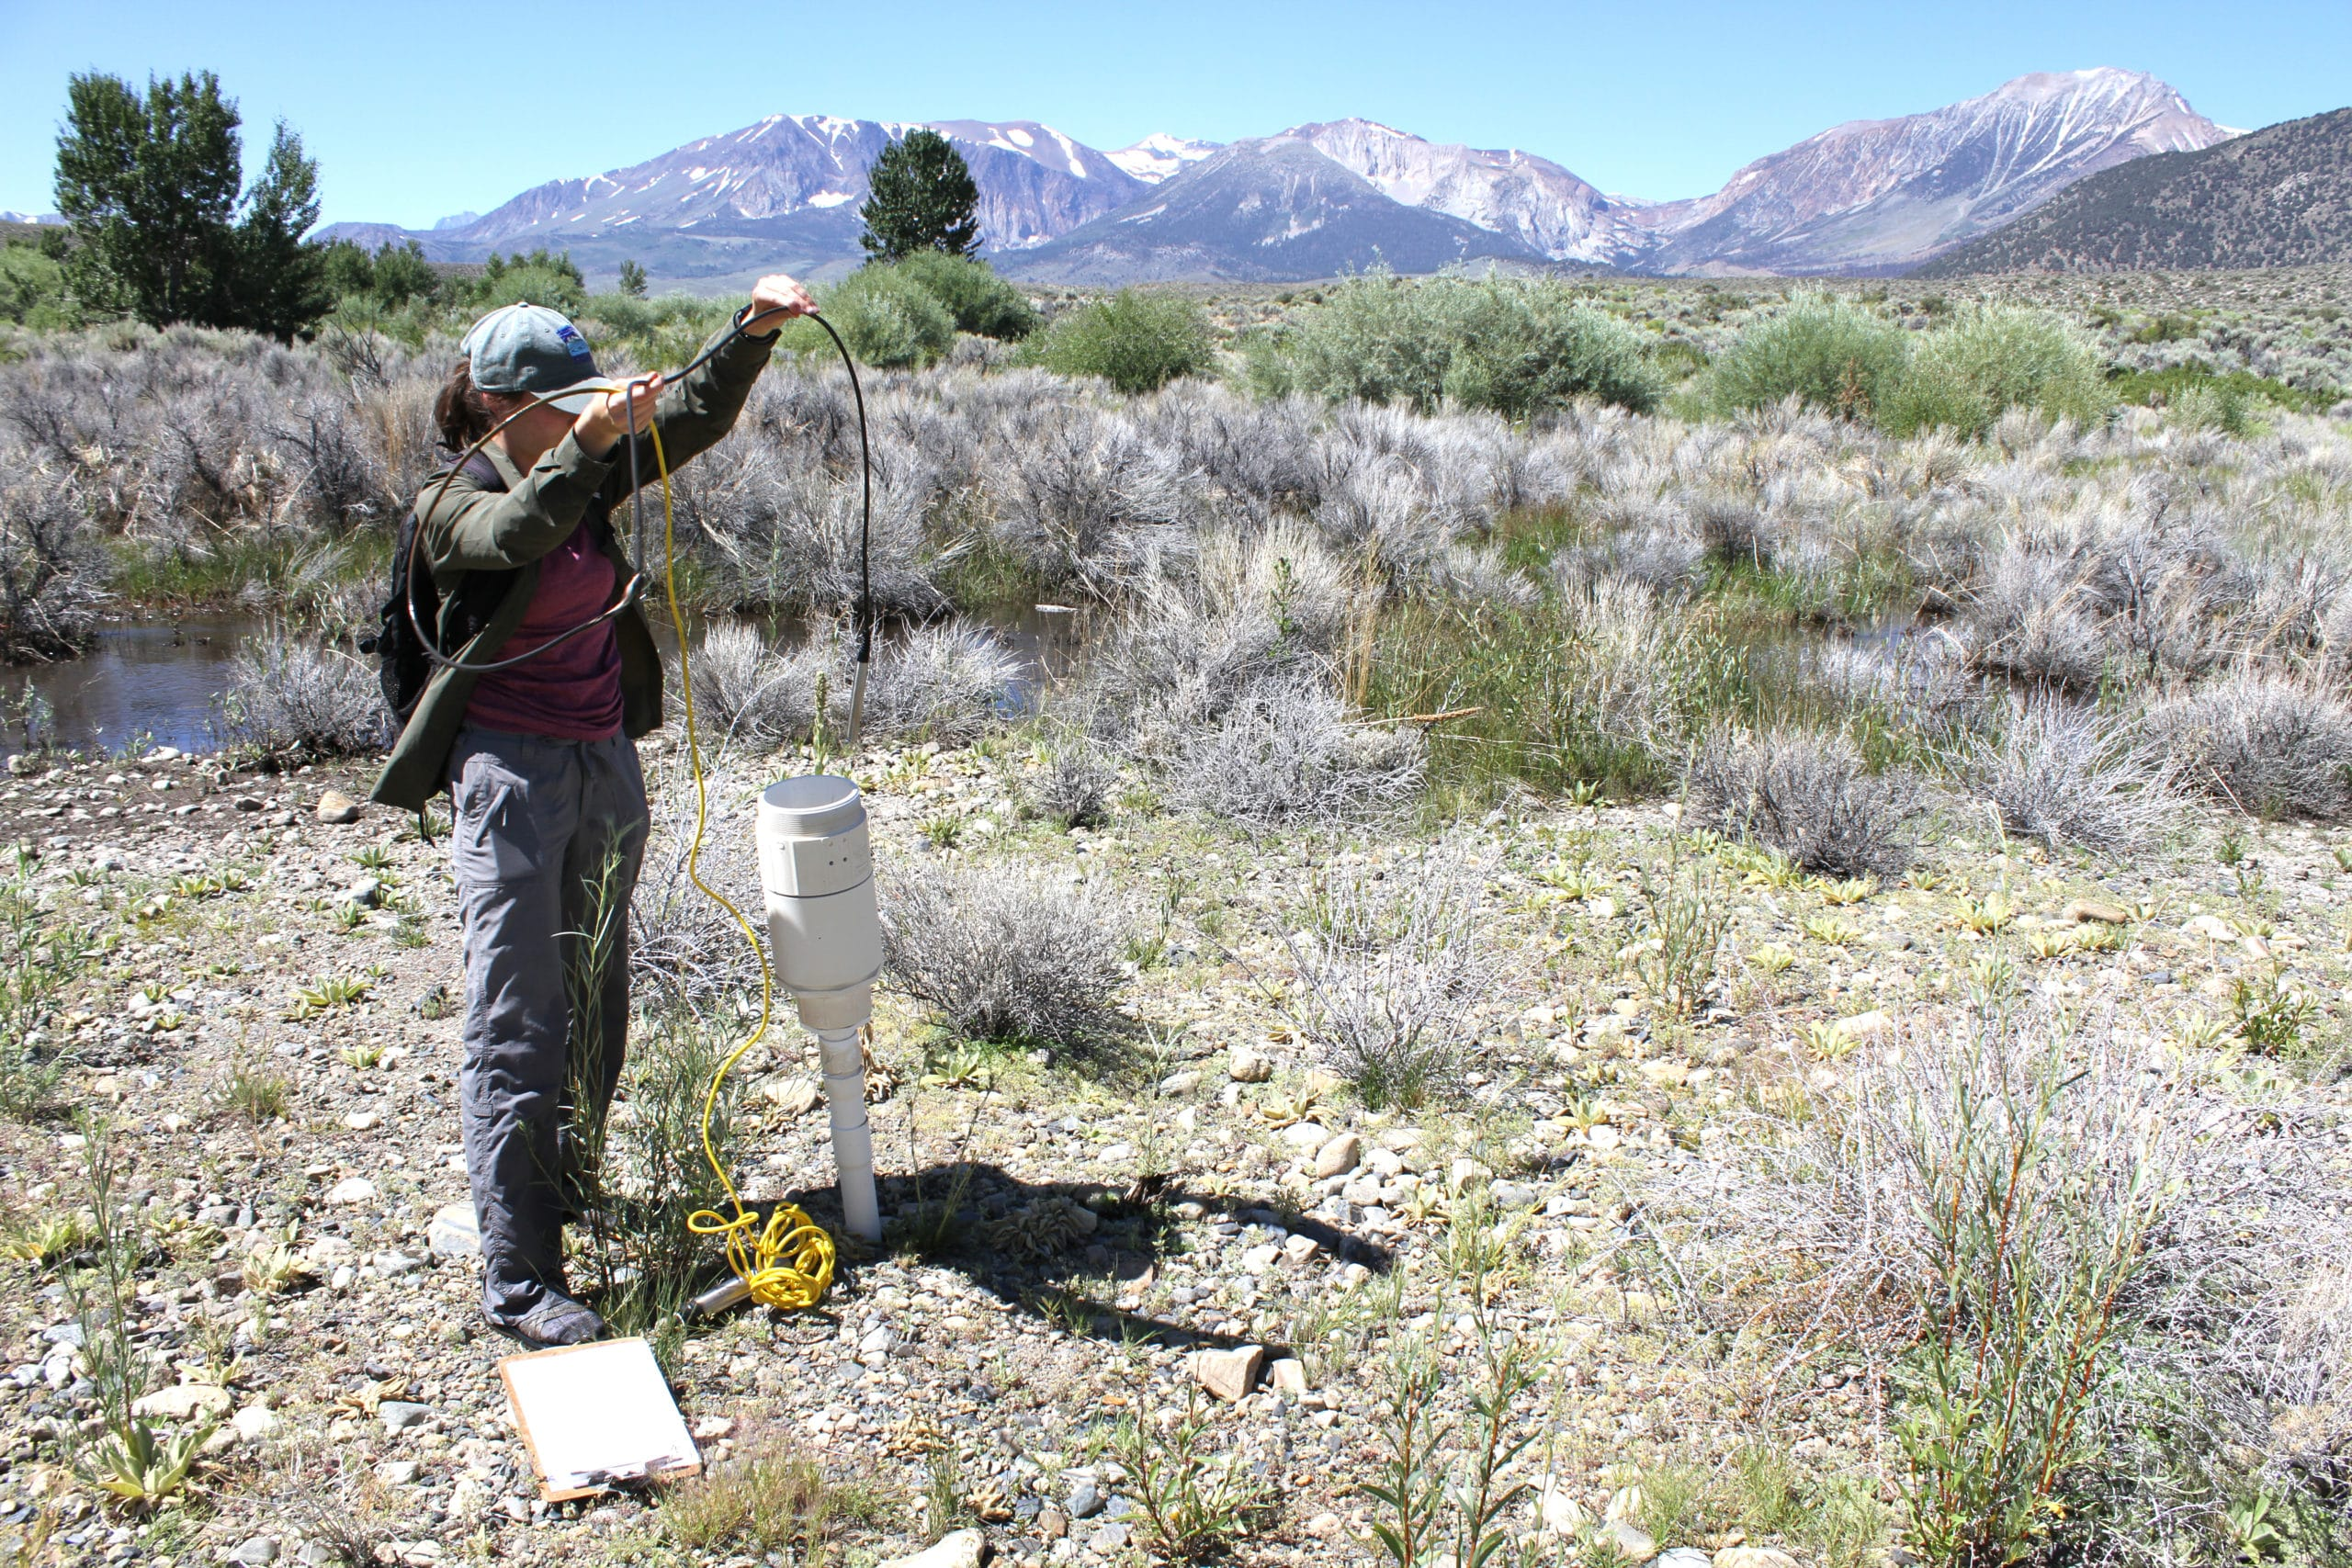 Person doing stream monitoring by inserting a long cord into a white plastic pipe that comes up out of the ground in a rocky patch of ground near a stream with green willows and pine trees in the background and tall snow-capped mountains in the distance.